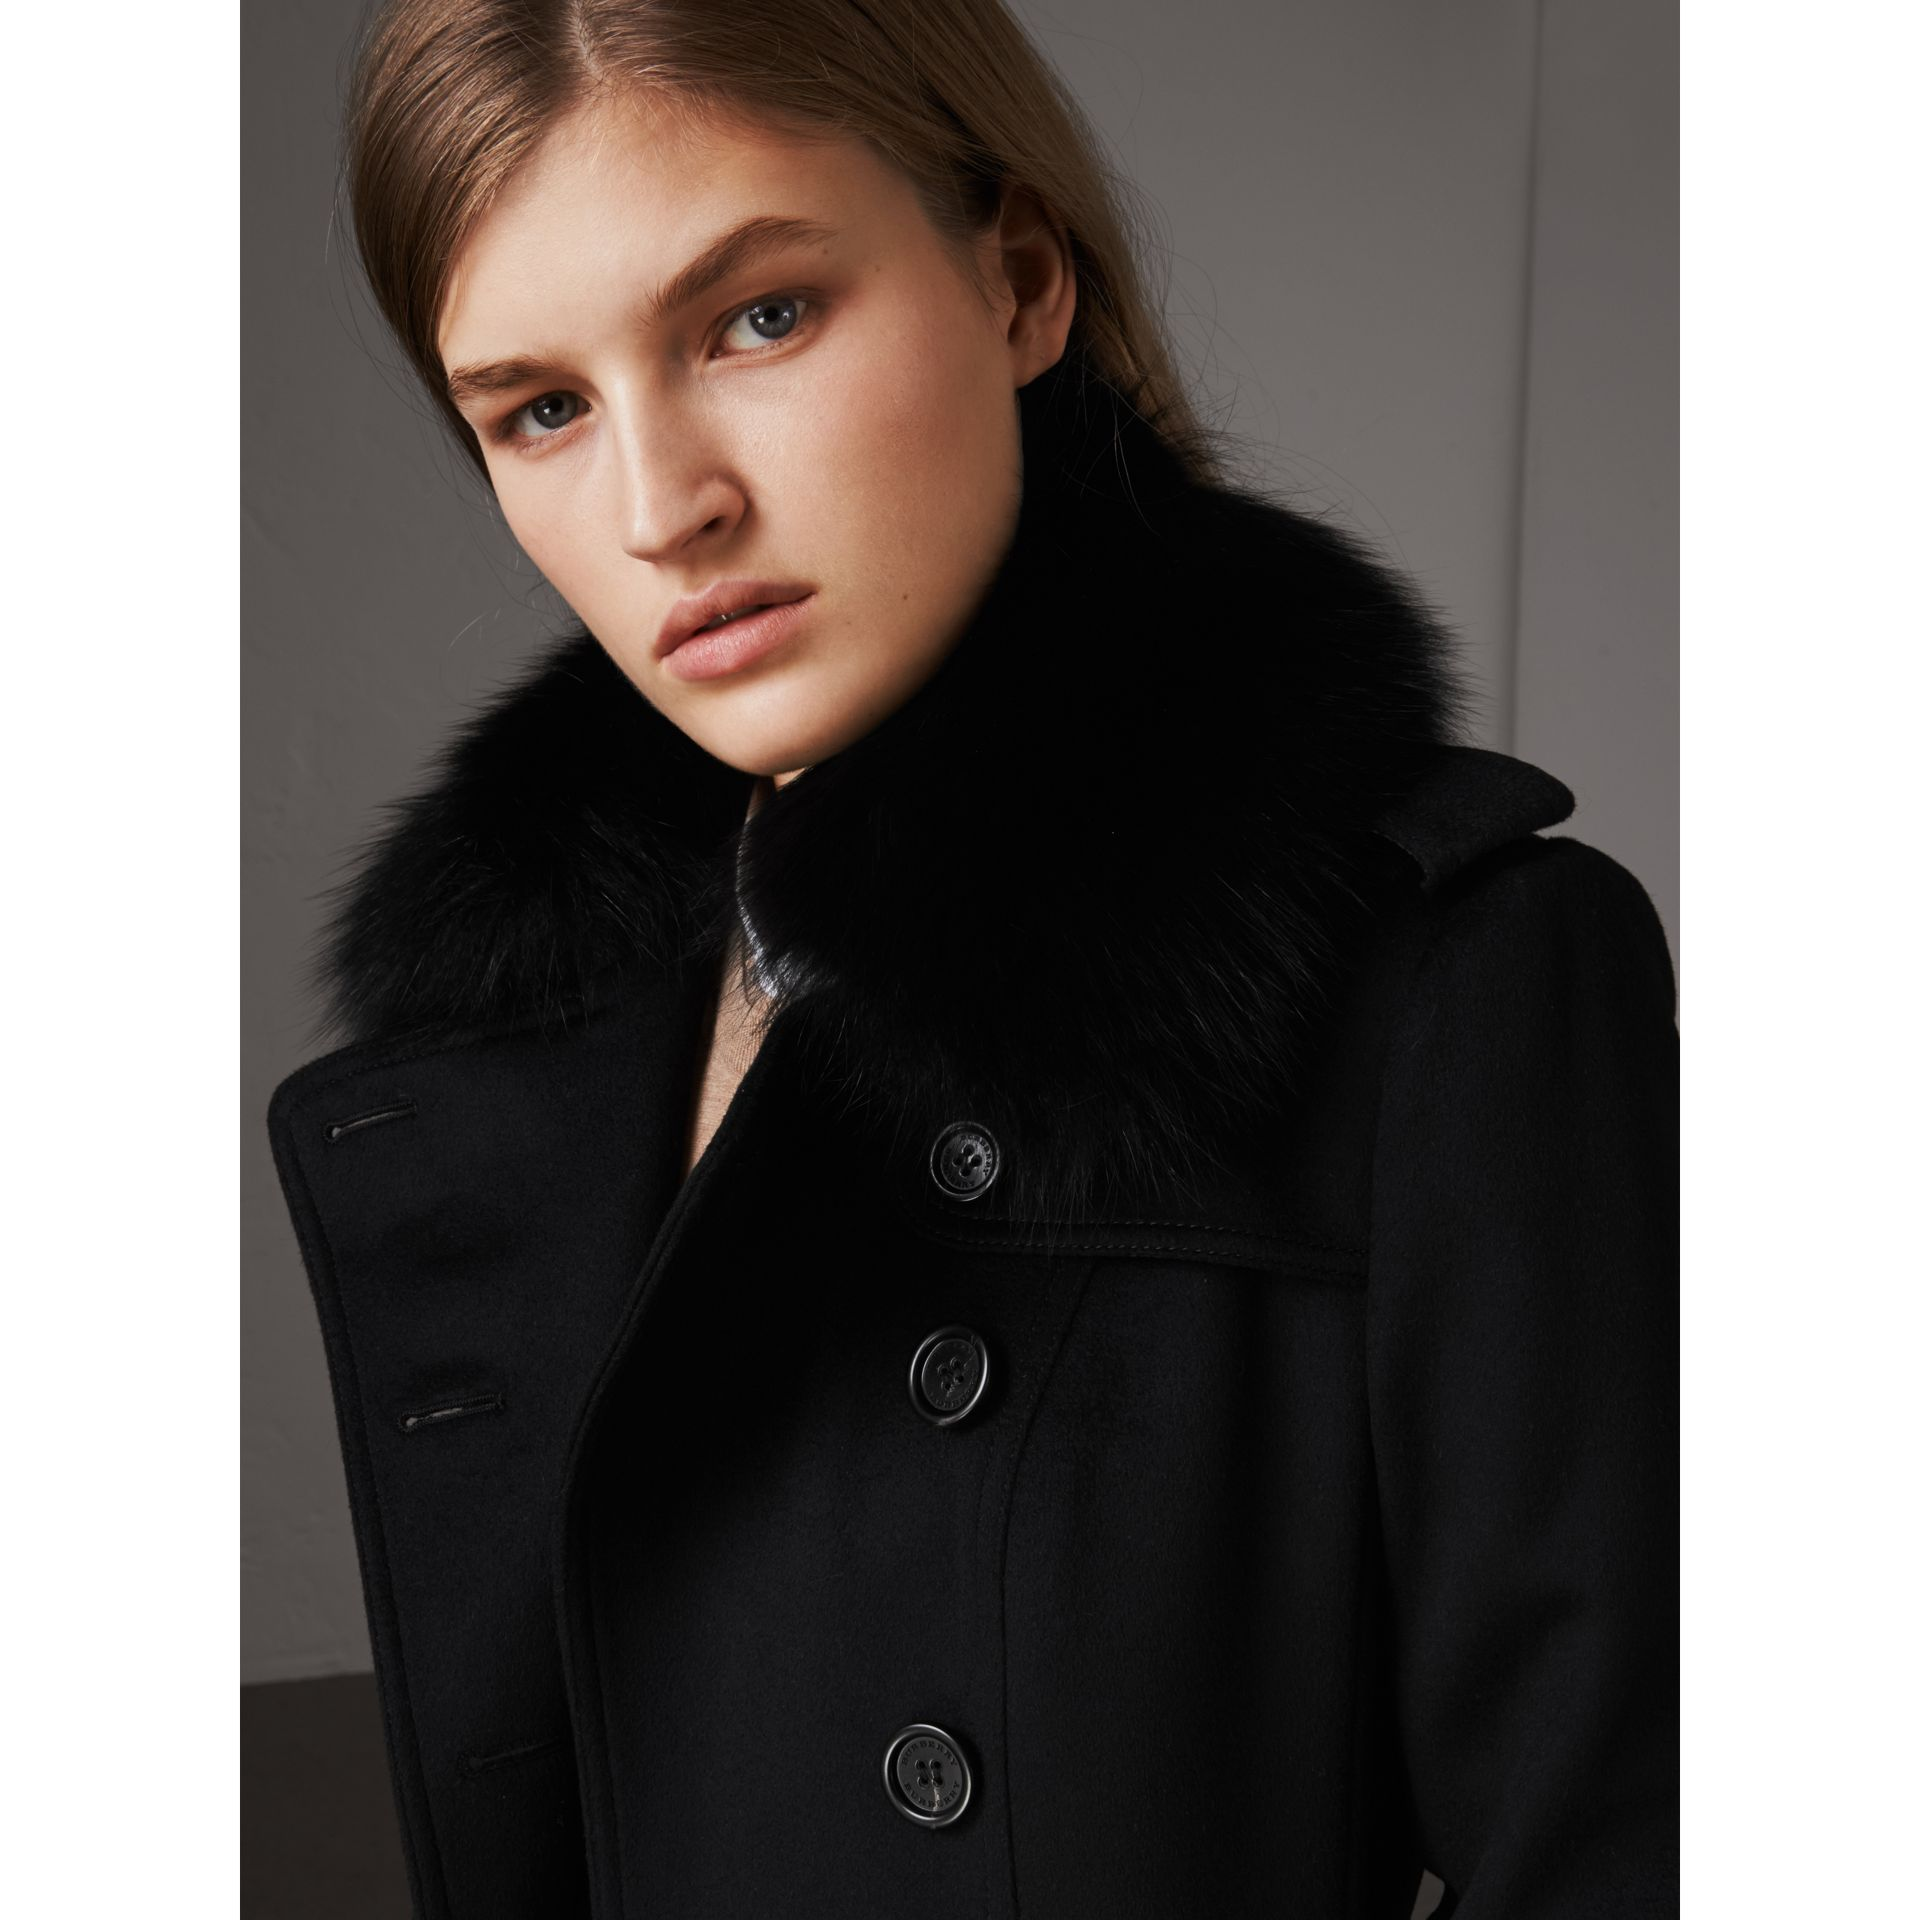 Wool Cashmere Trench Coat with Fur Collar in Black - Women | Burberry Singapore - gallery image 2